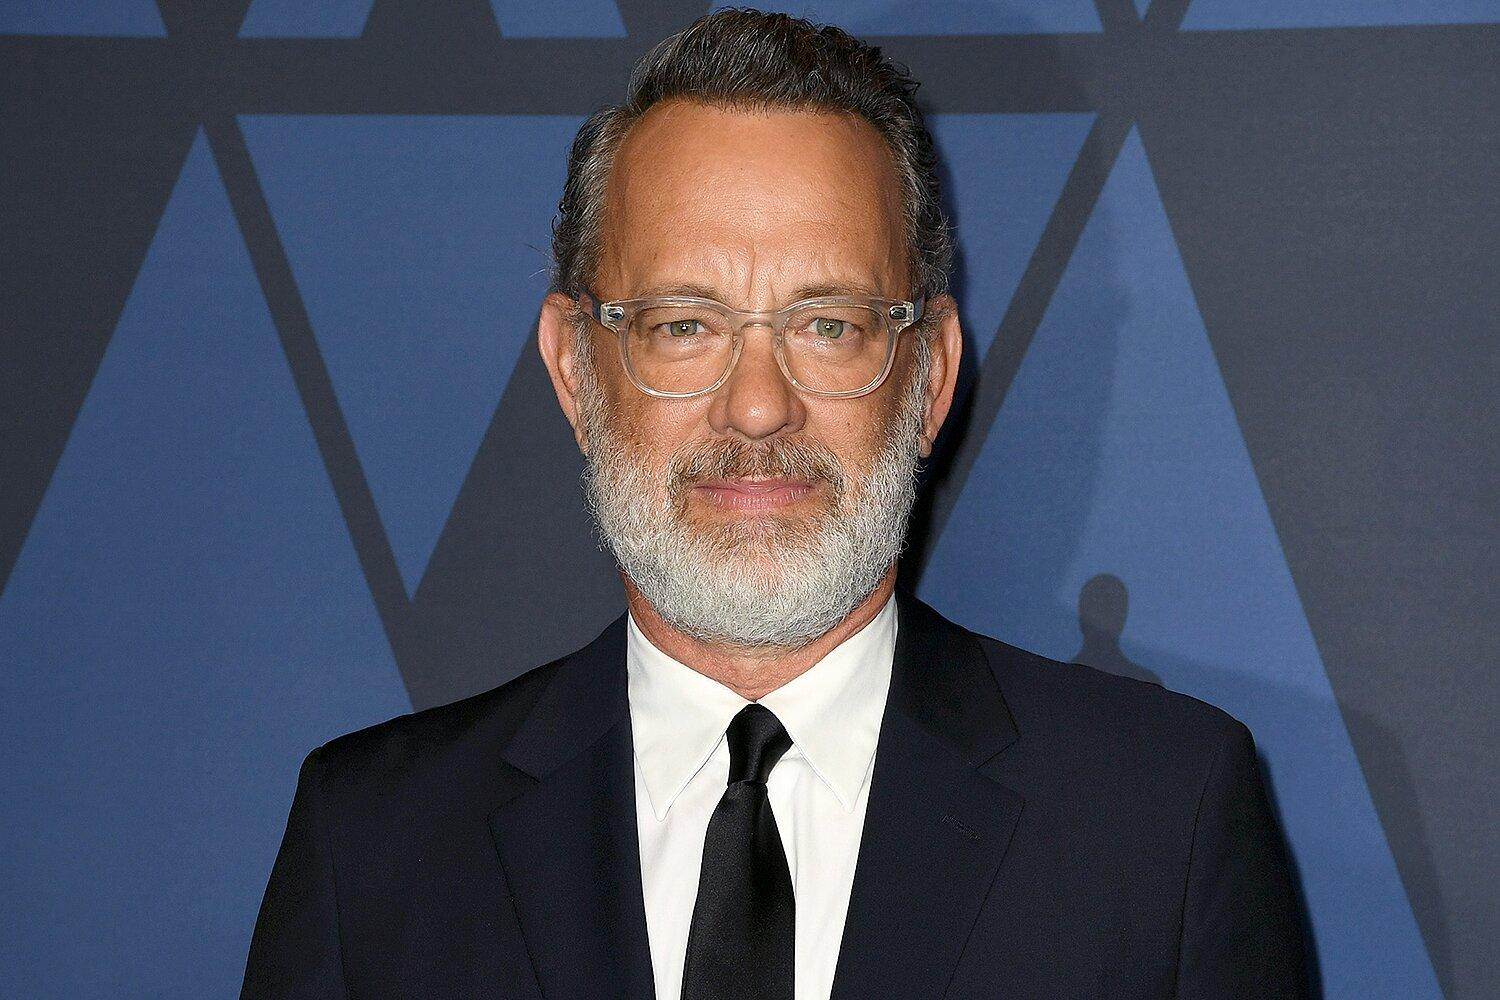 Tom Hanks to Star in His Second Film for Apple TV+, the Sci-Fi Adventure Finch